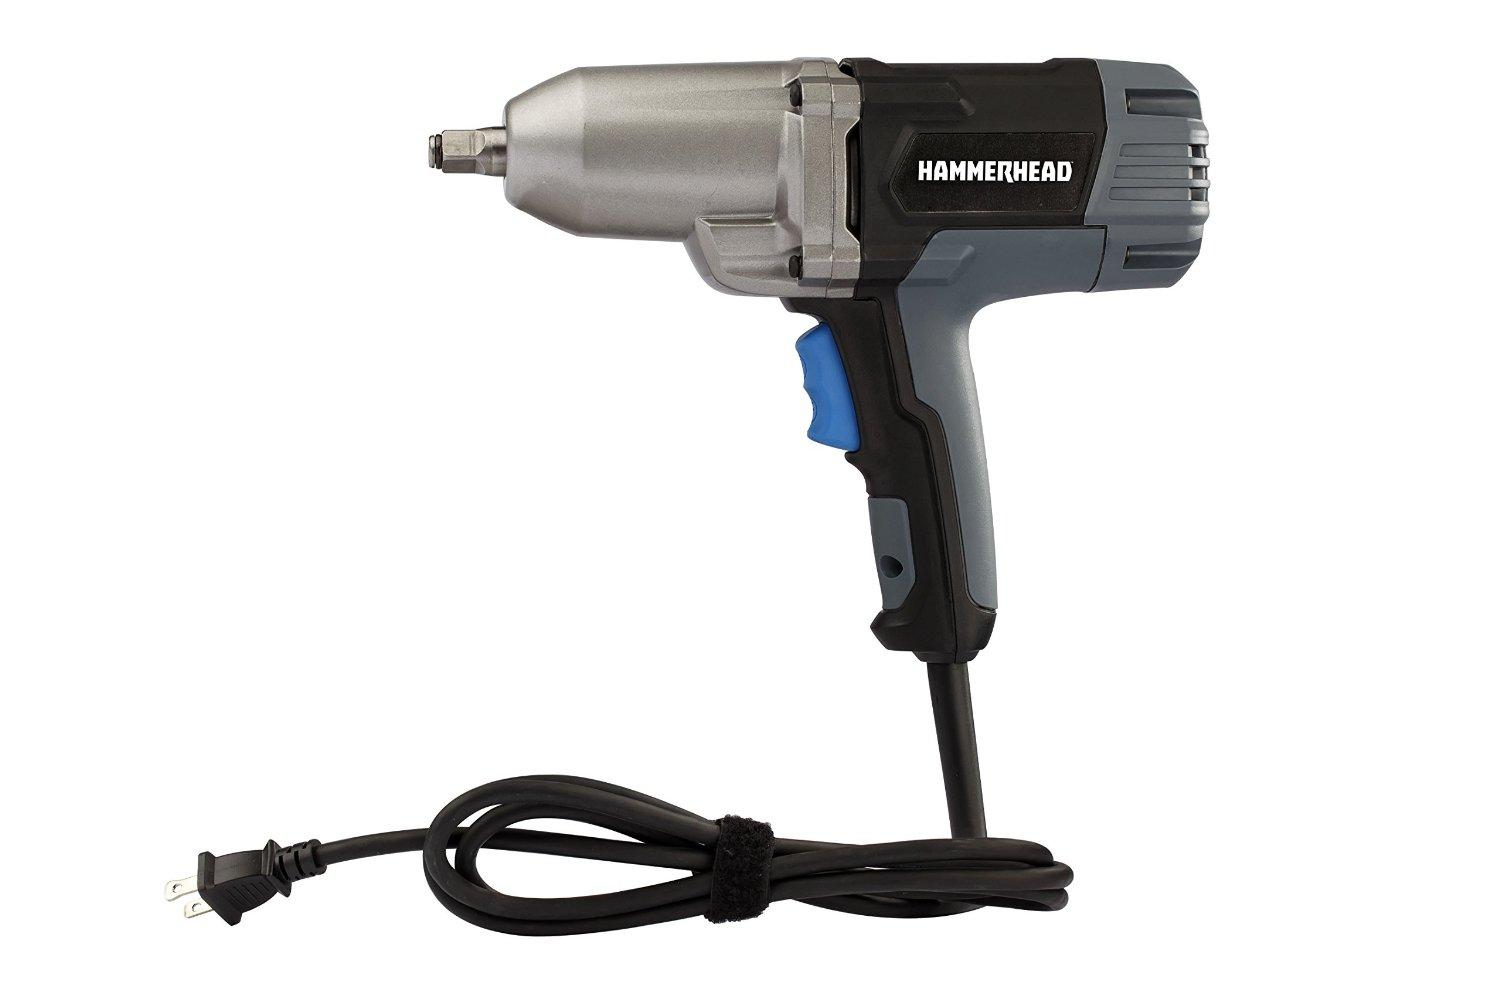 electric impact wrench 1 2 inch corded gun mechanics torque kit hand power tool ebay. Black Bedroom Furniture Sets. Home Design Ideas